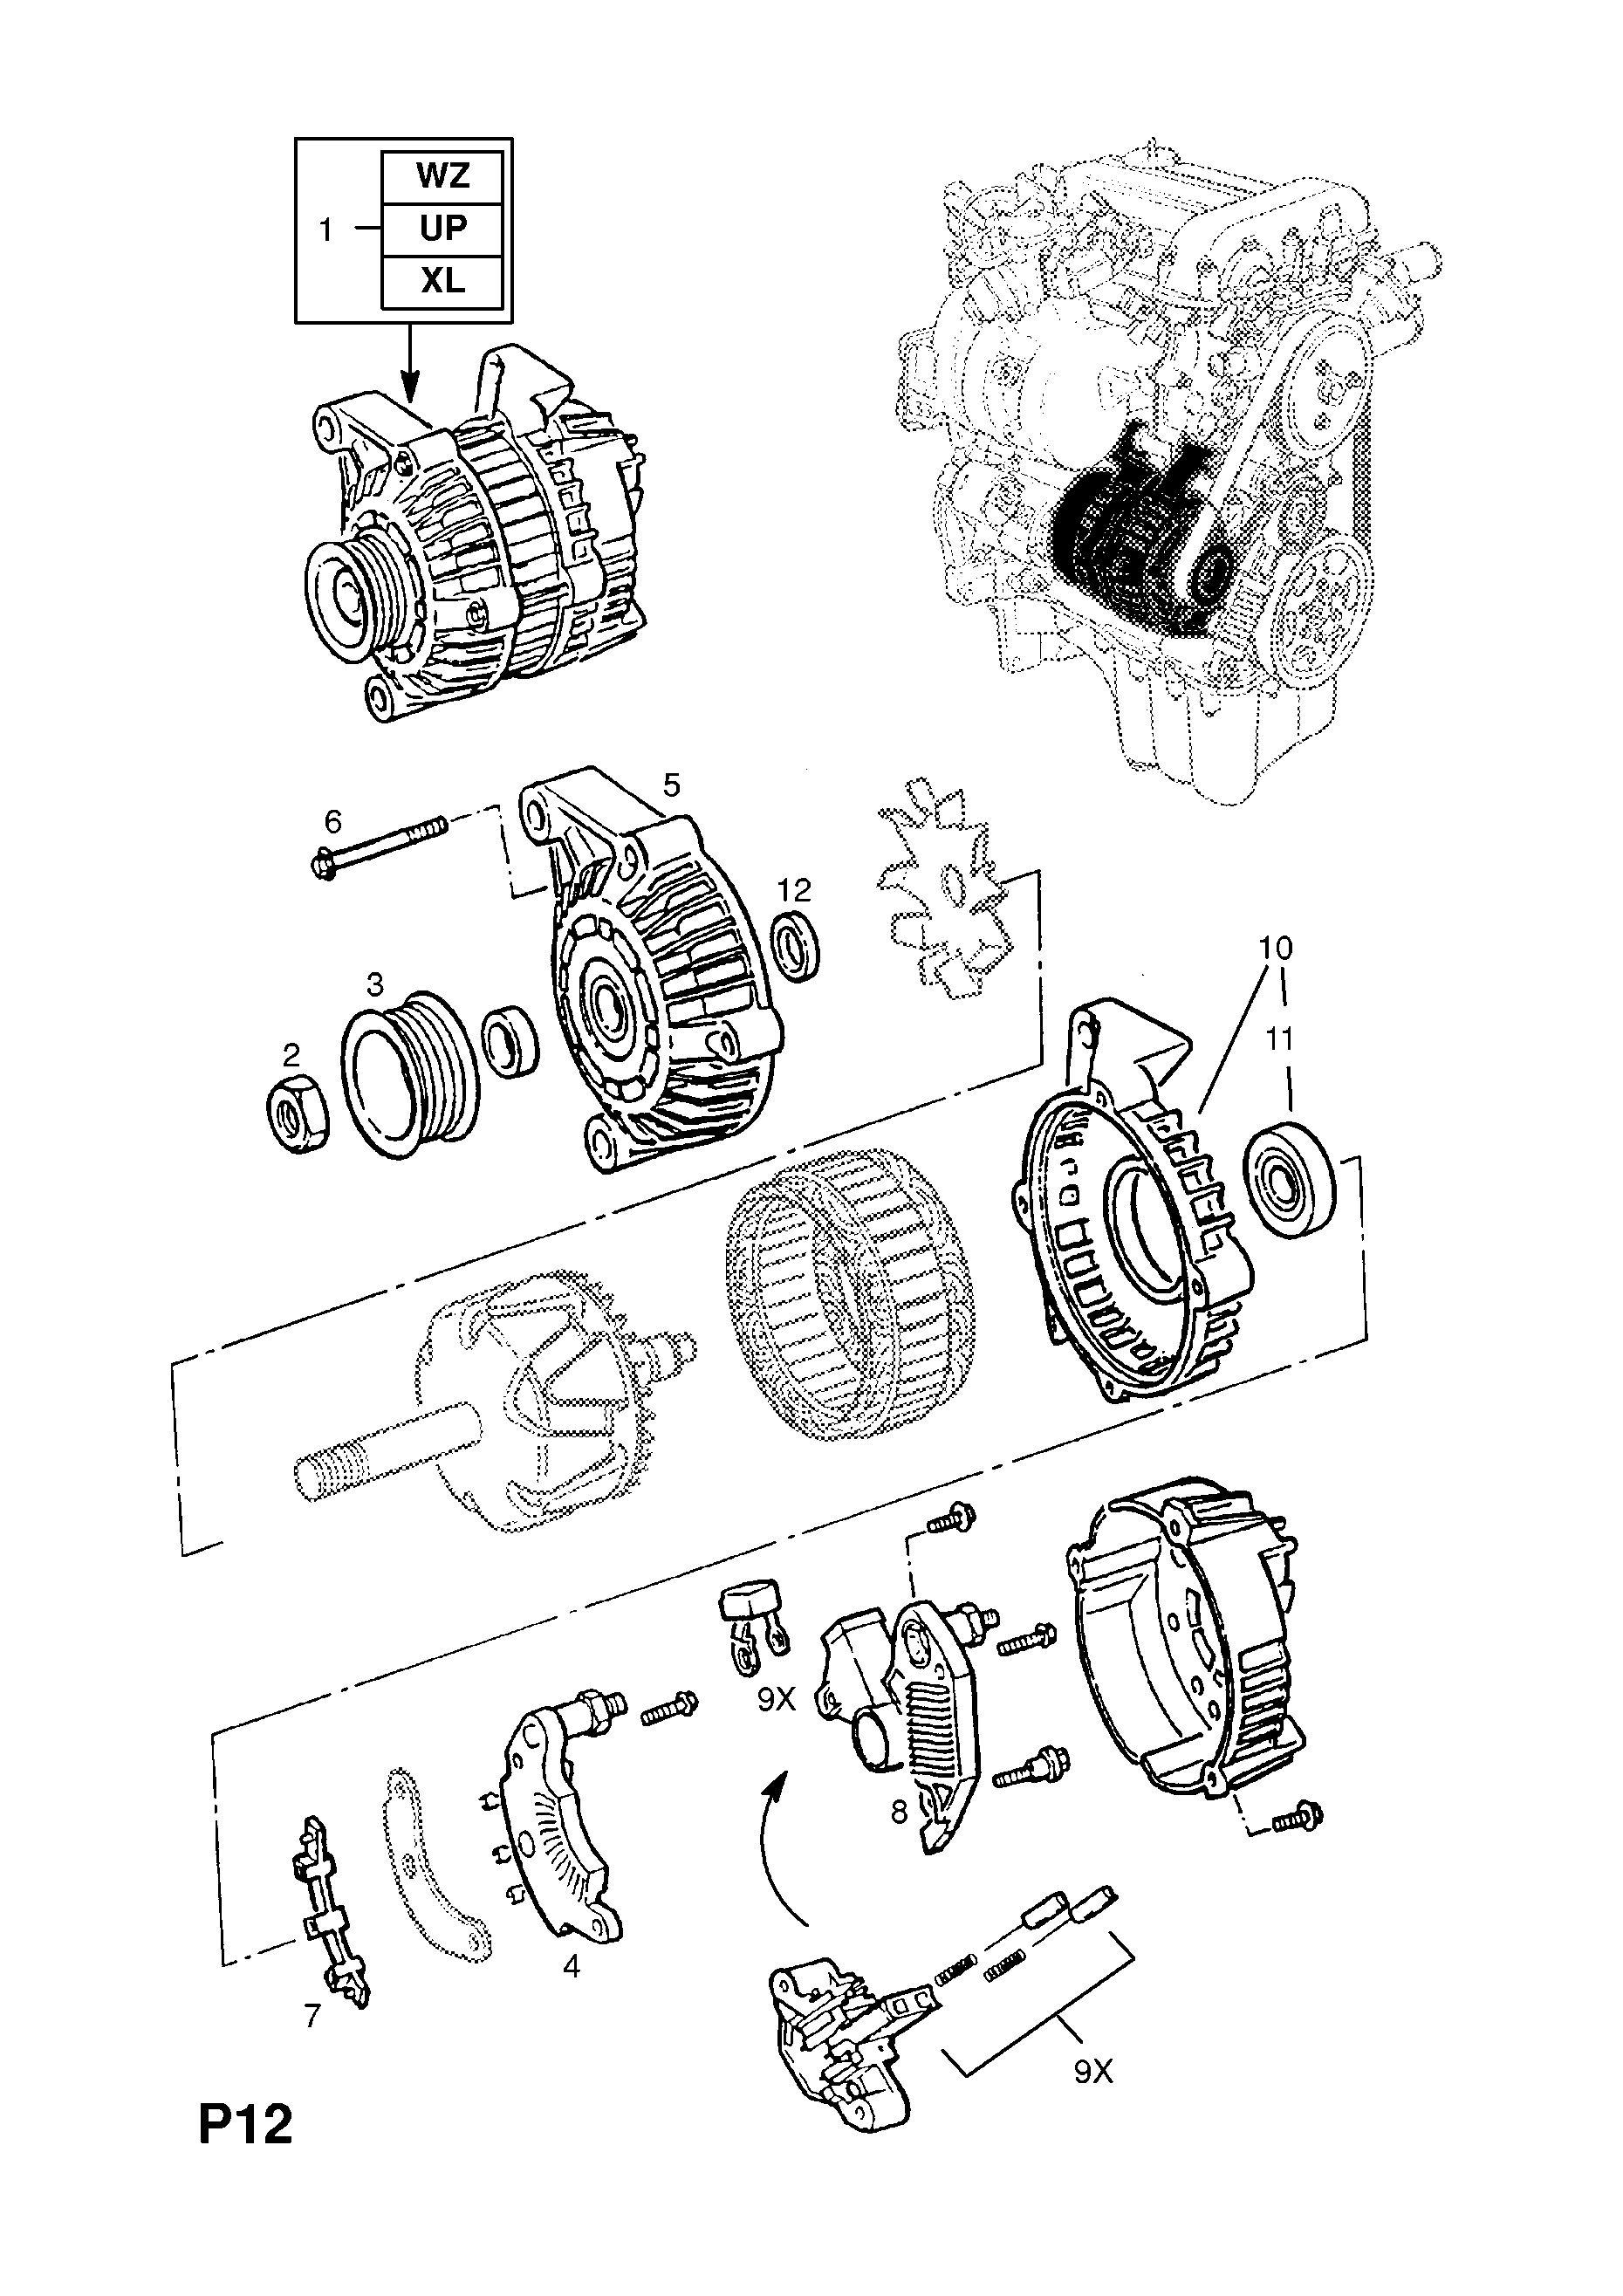 List of parts